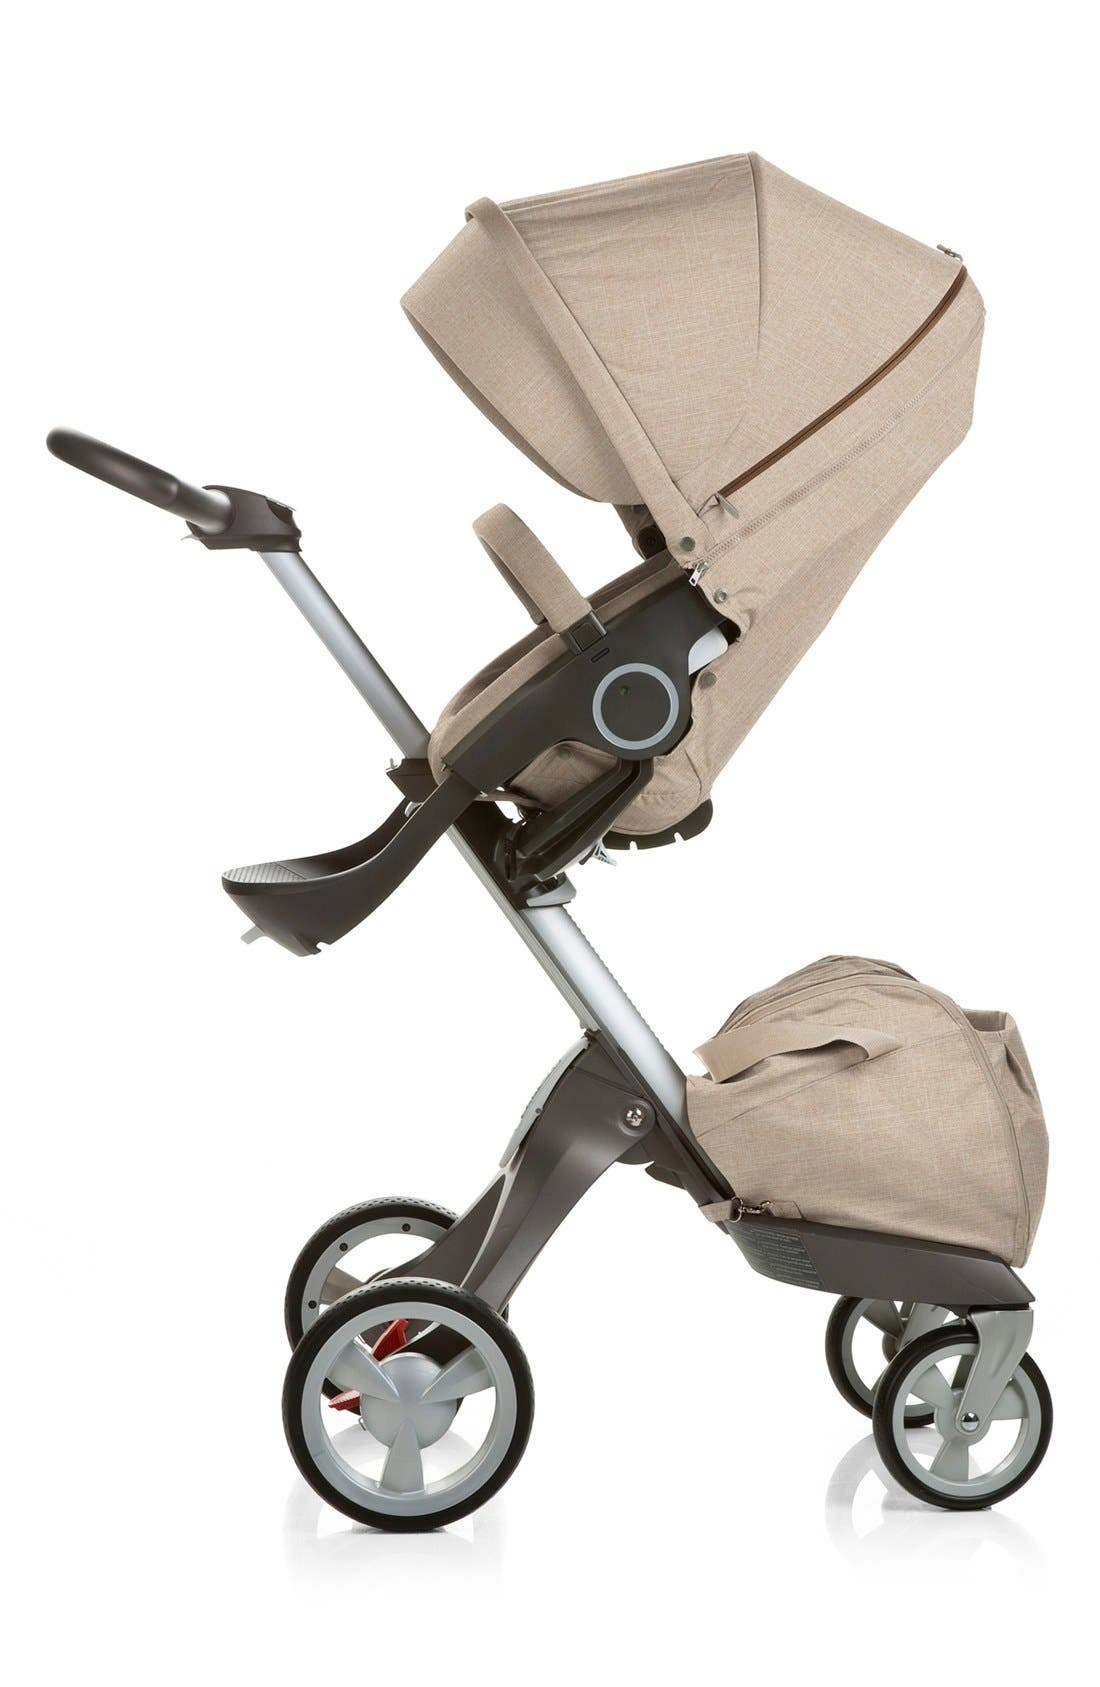 Stokke Car Seat Adaptors, Carry Cot & Stroller